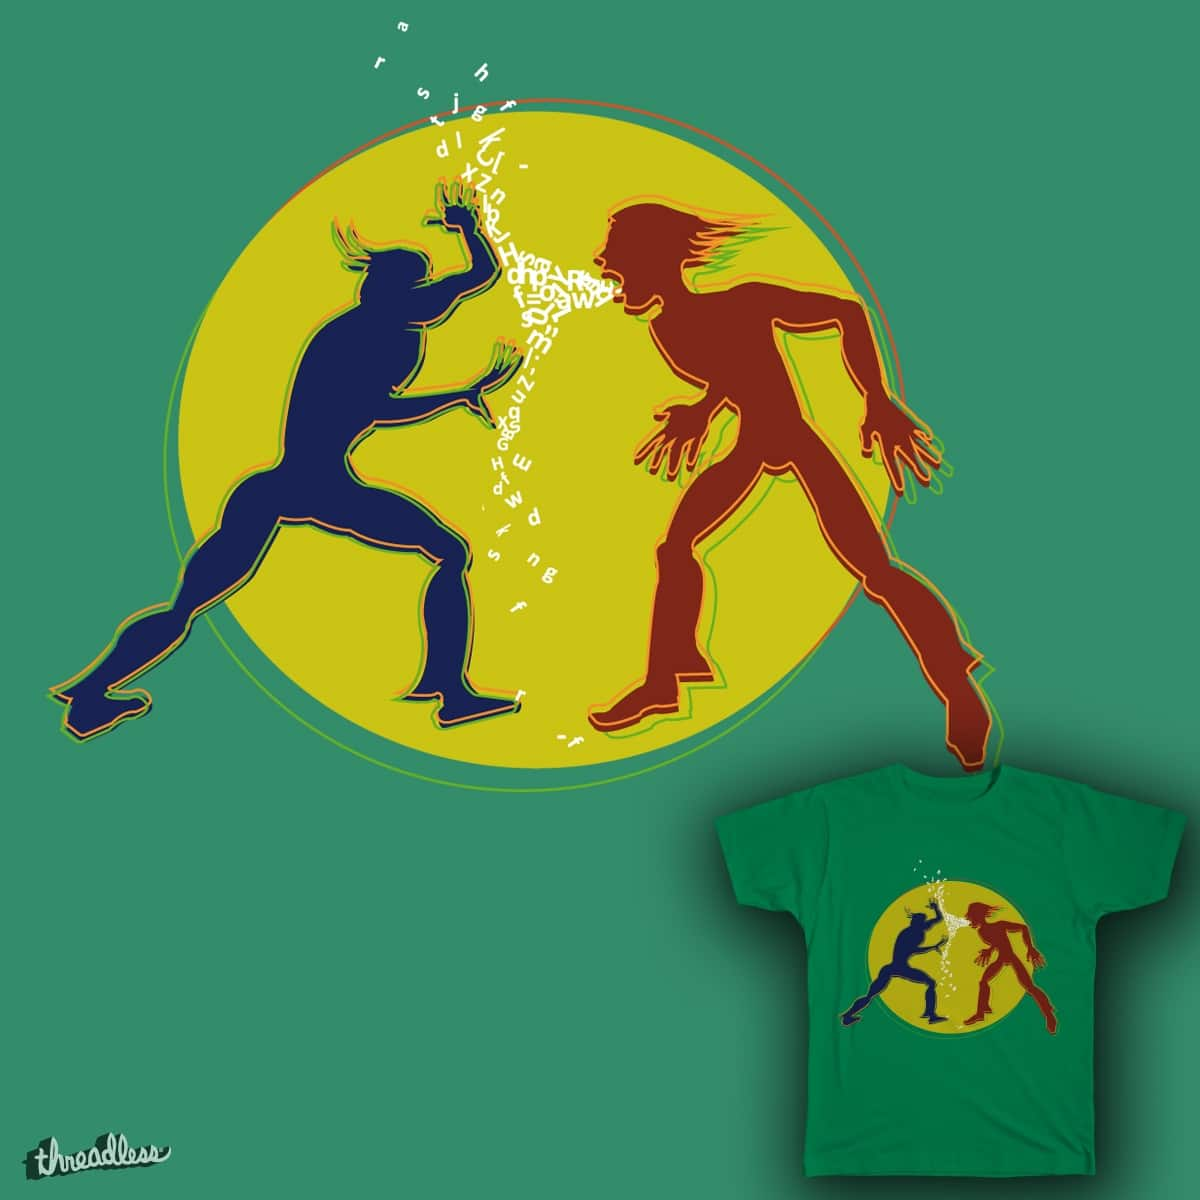 debates by vorobioffalex on Threadless